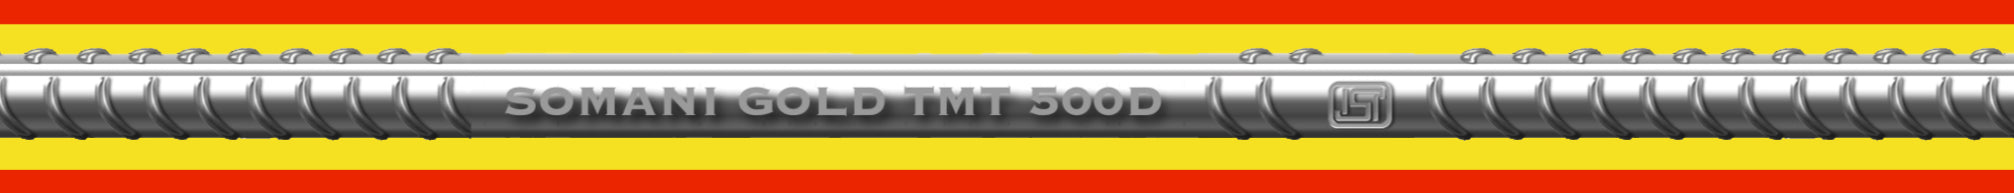 TMT Steel | Somani Gold TMT | Hindustan Steel Suppliers